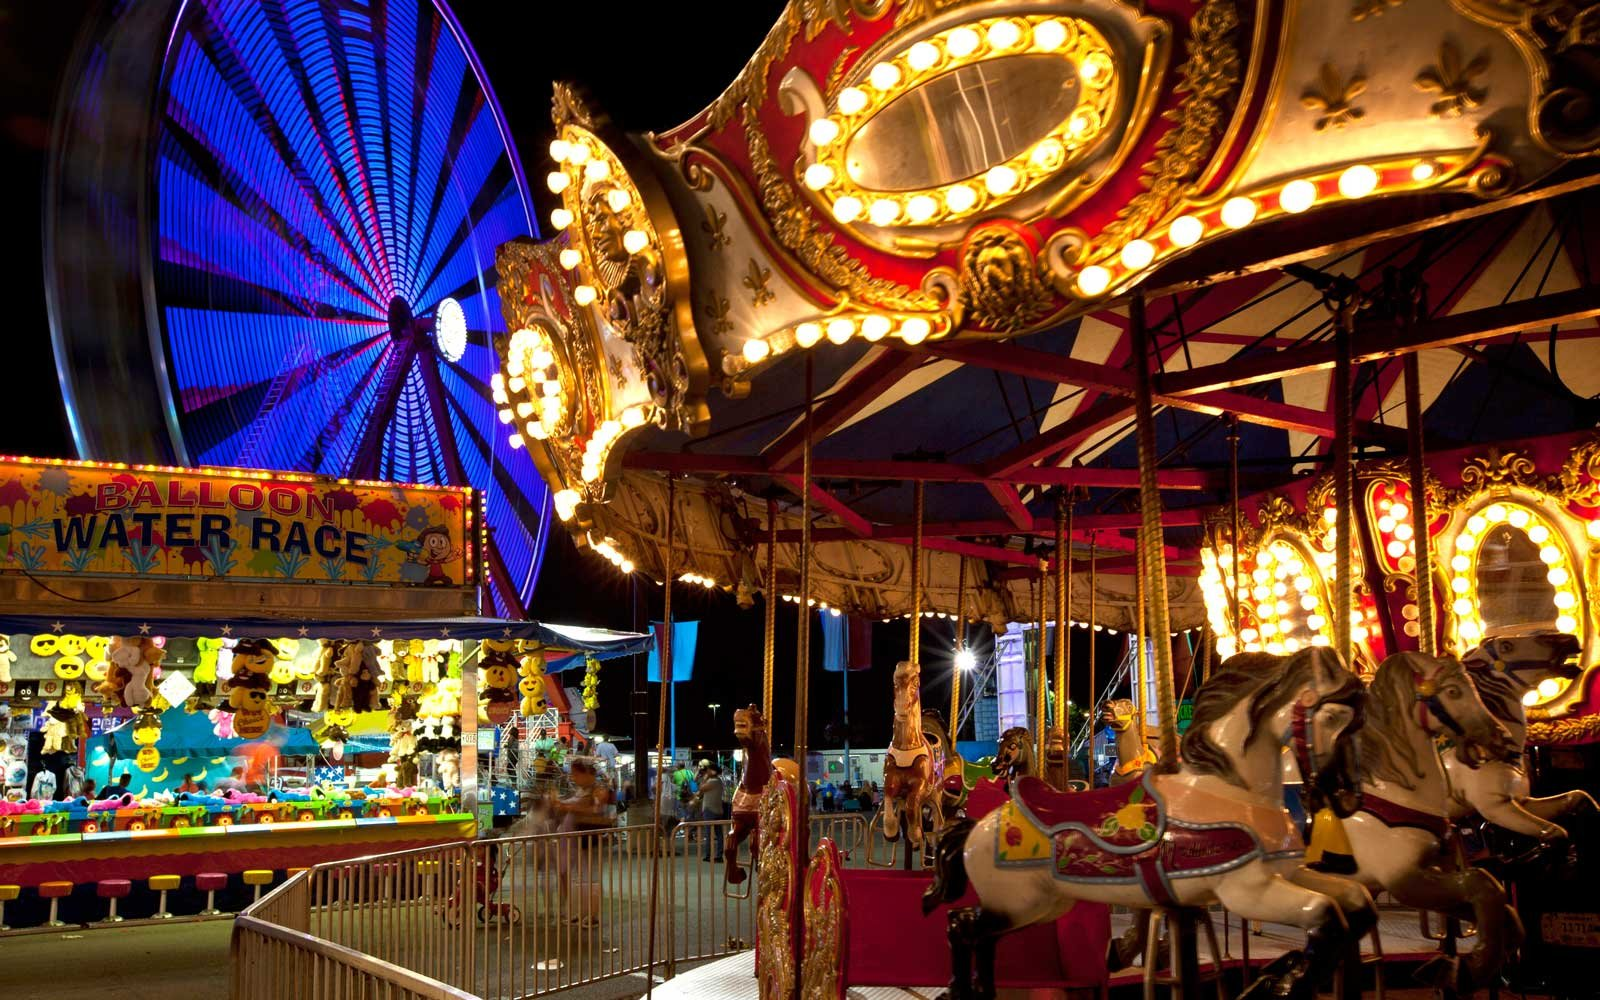 5. Ohio State Fair, July 25–August 5